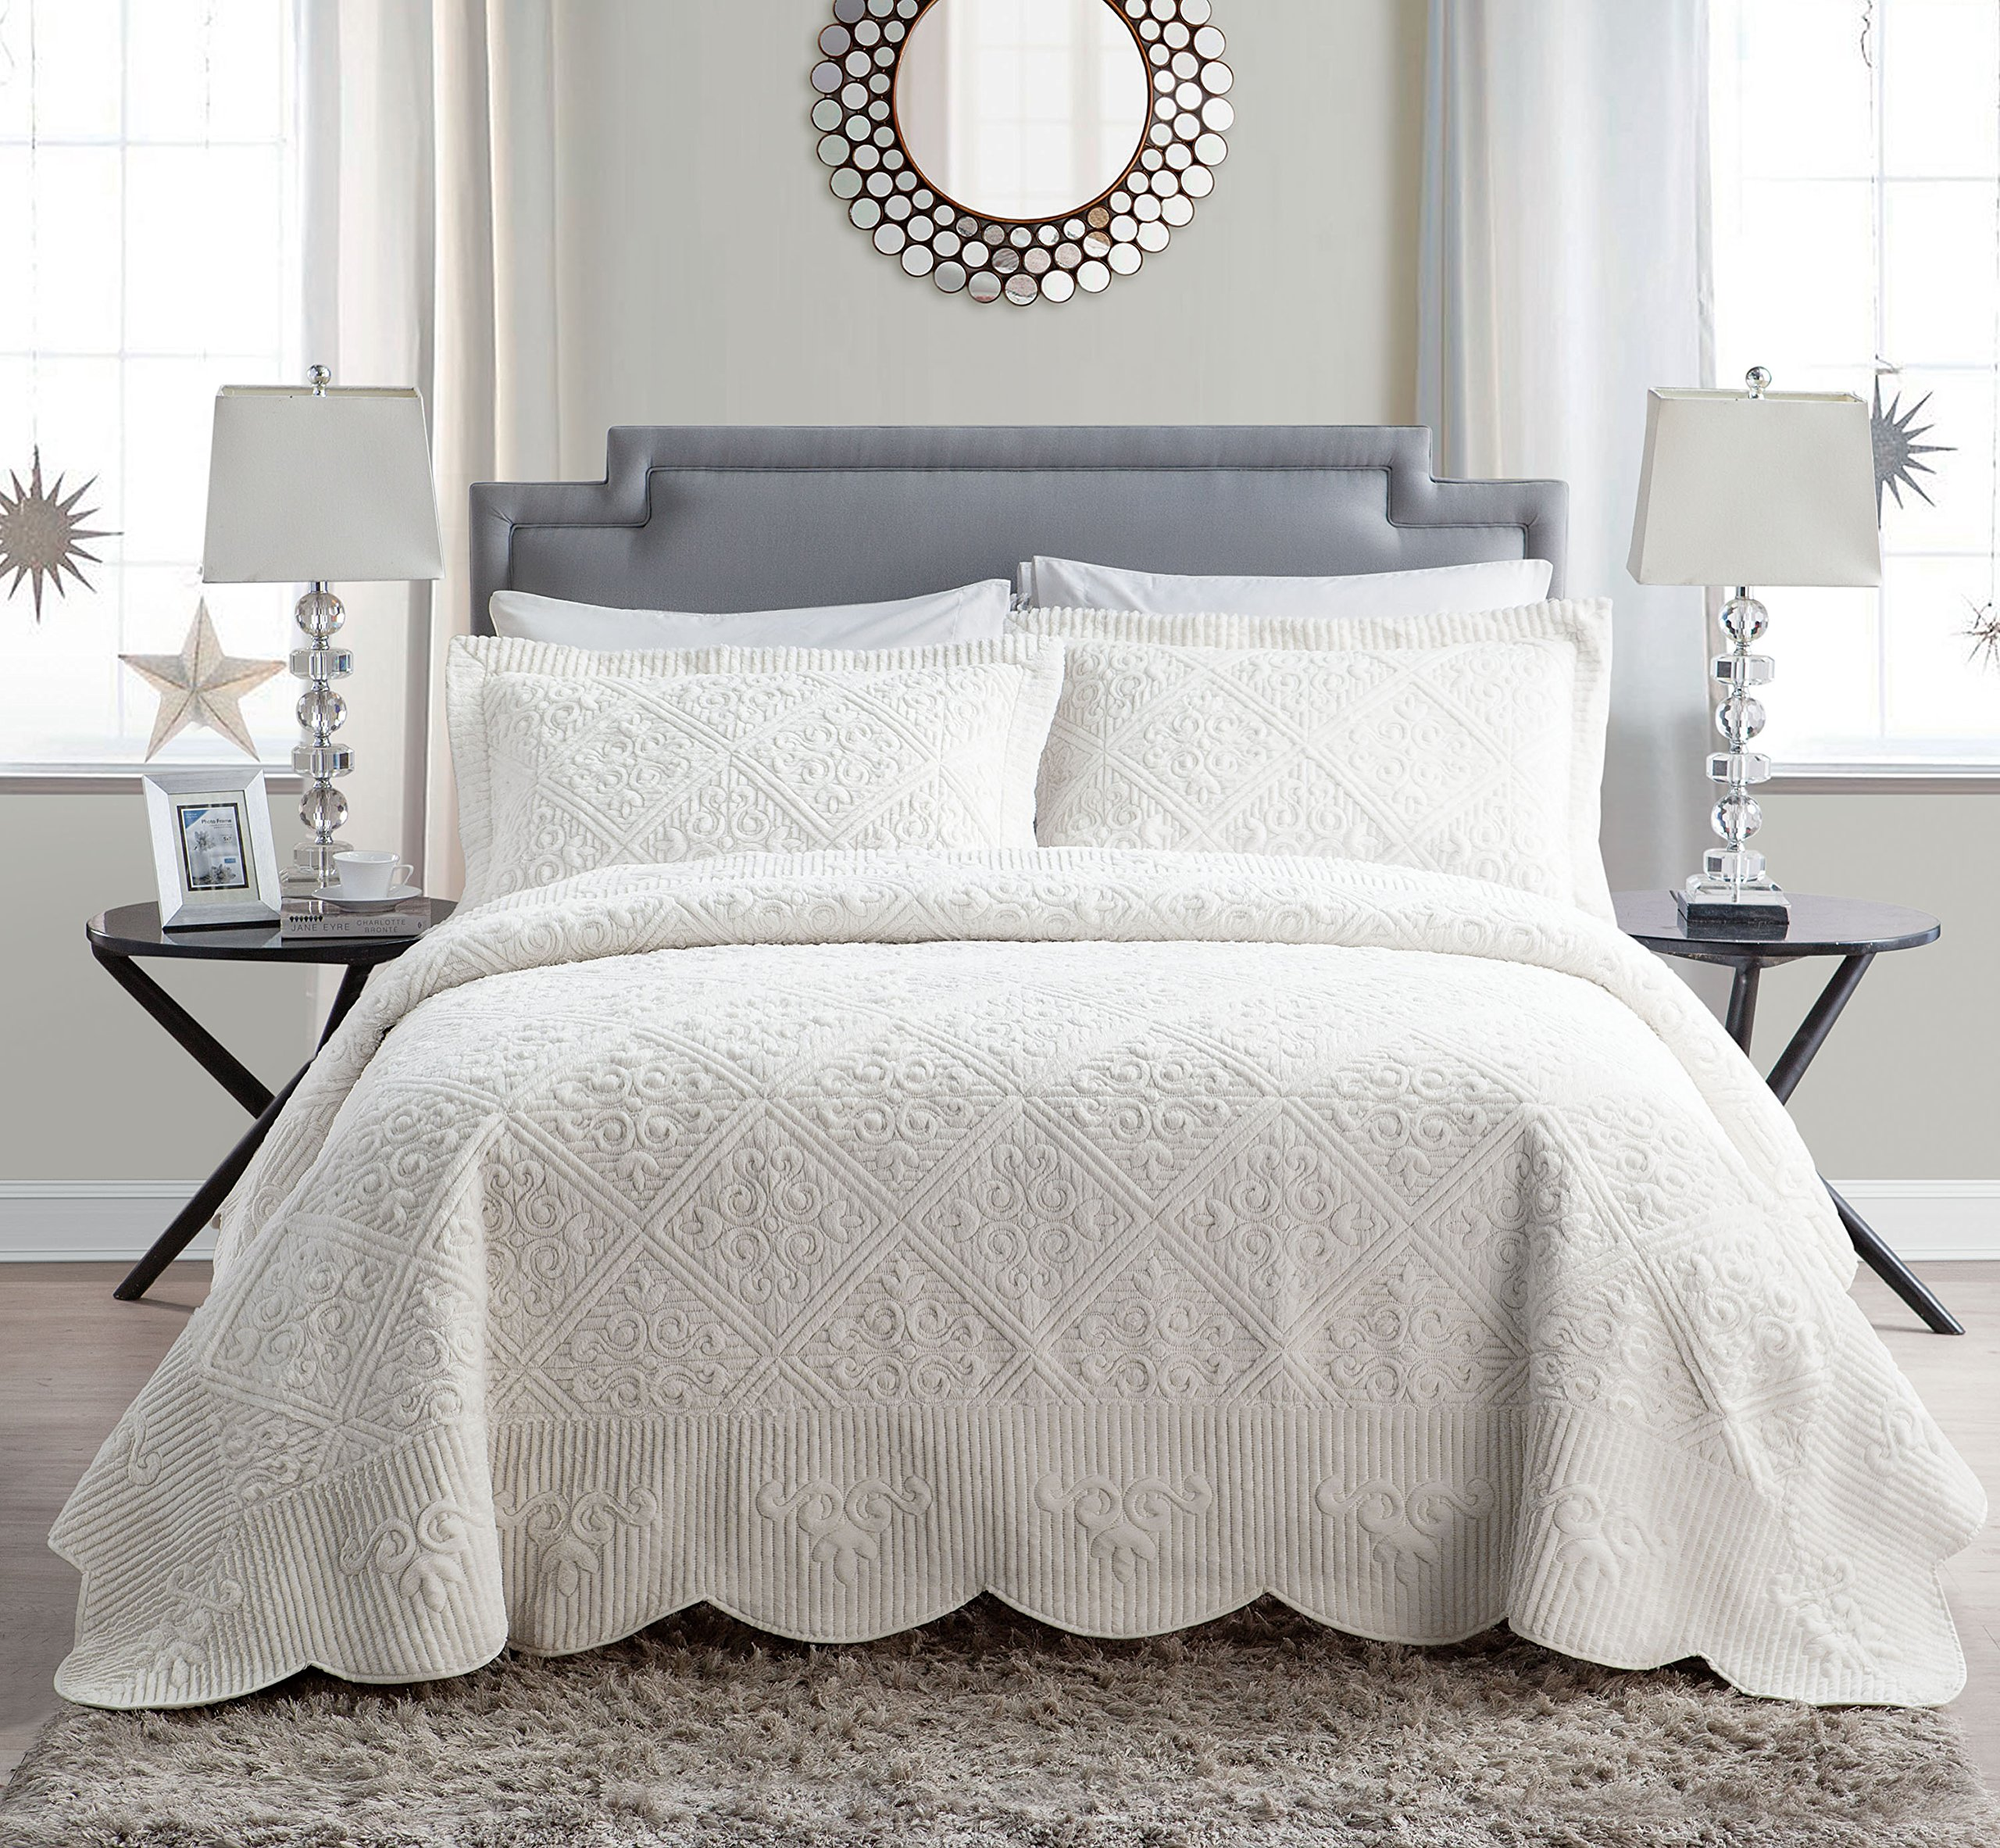 VCNY Home WS1-3BP-KING-IN-IV Westland Plush Quilted 3-Piece Bedspread Set , King, Ivory by VCNY Home